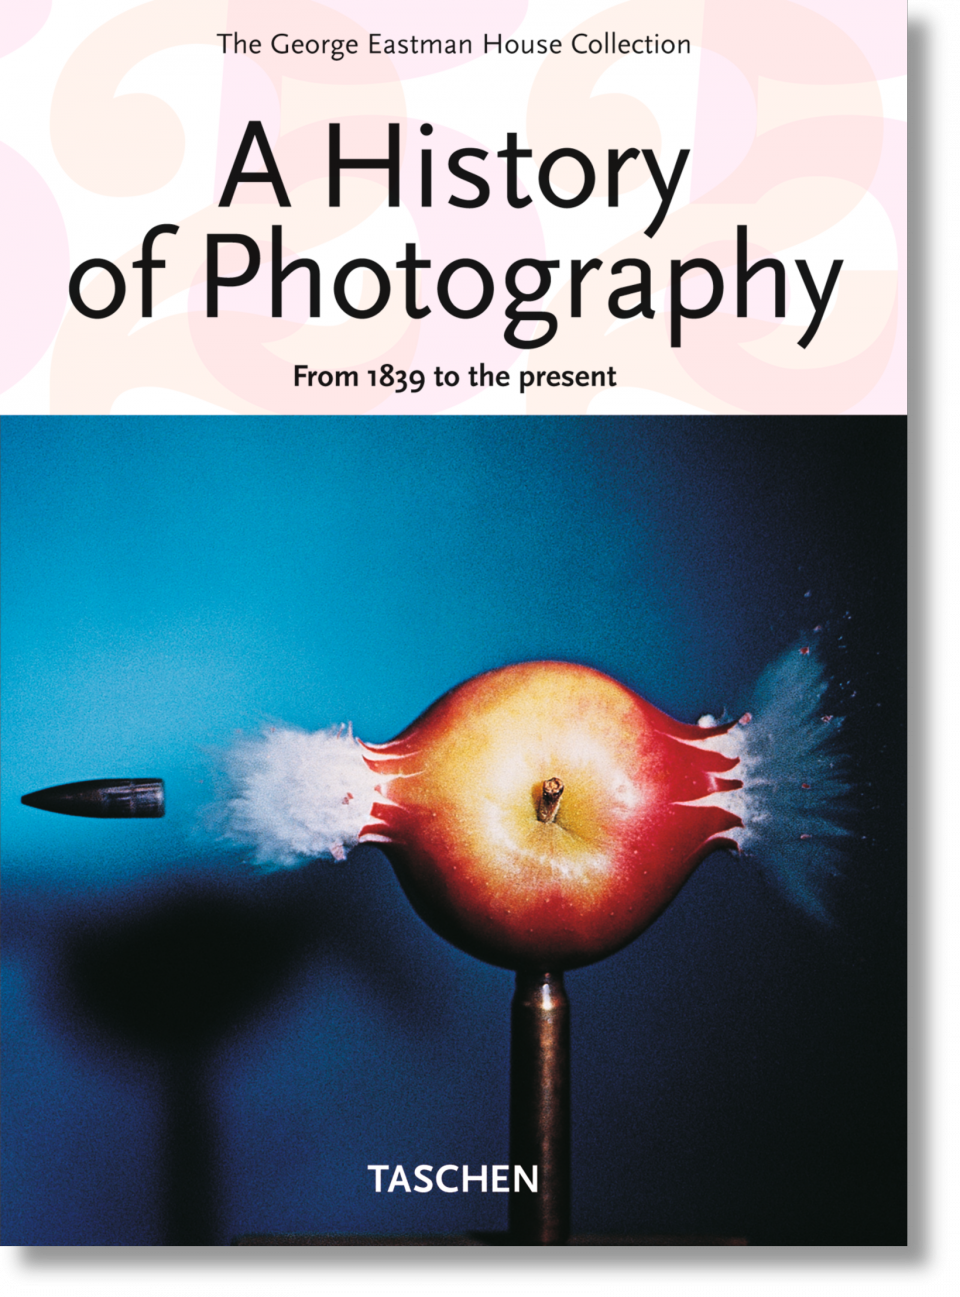 Need info on History of Photography?